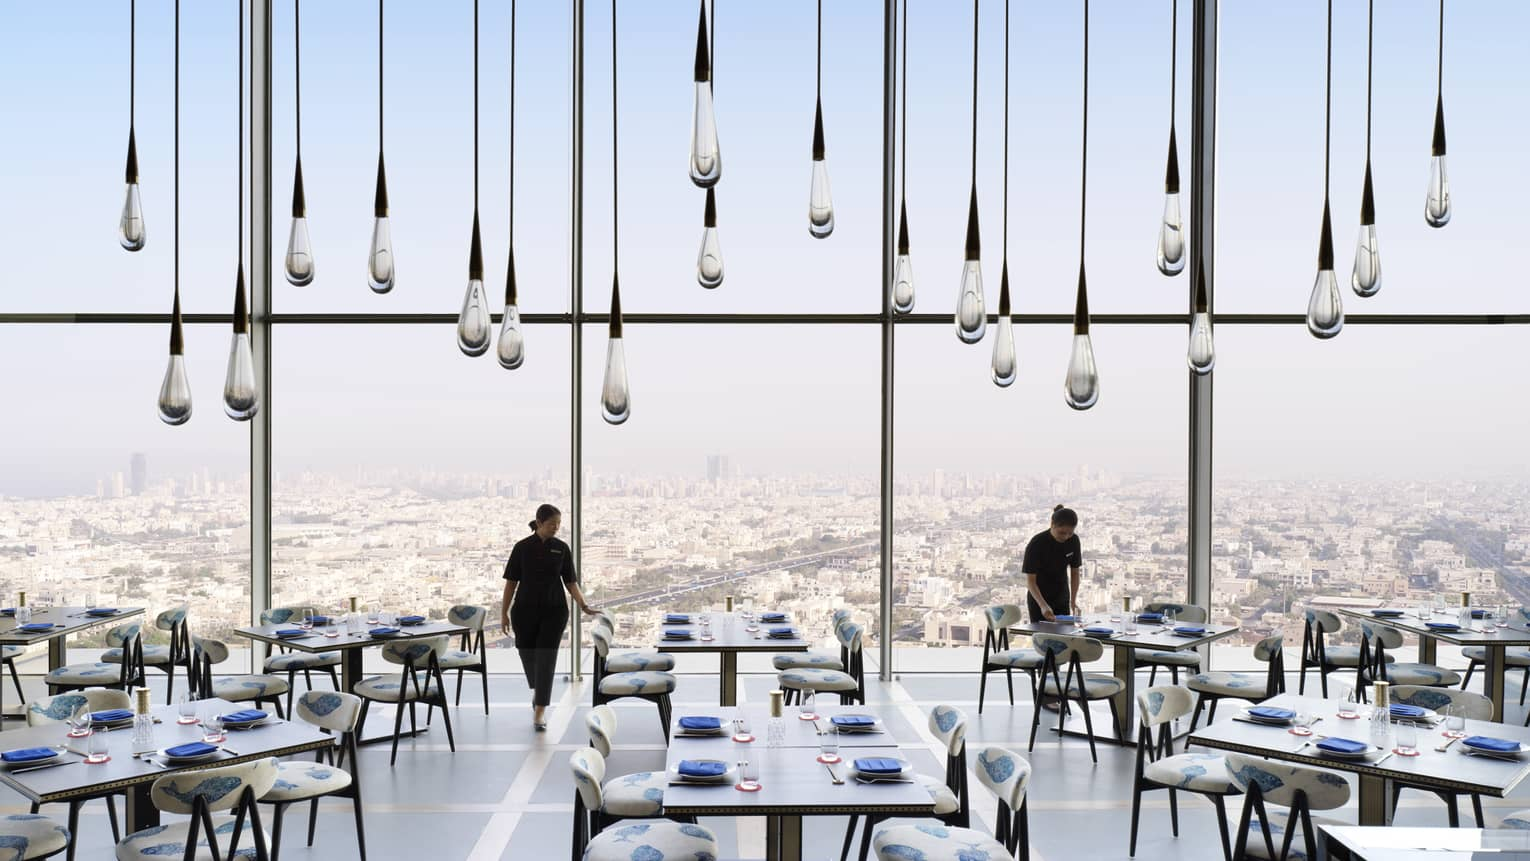 Large glass raindrop-shaped lights hang from soaring ceiling in sunny dining room, servers set tables